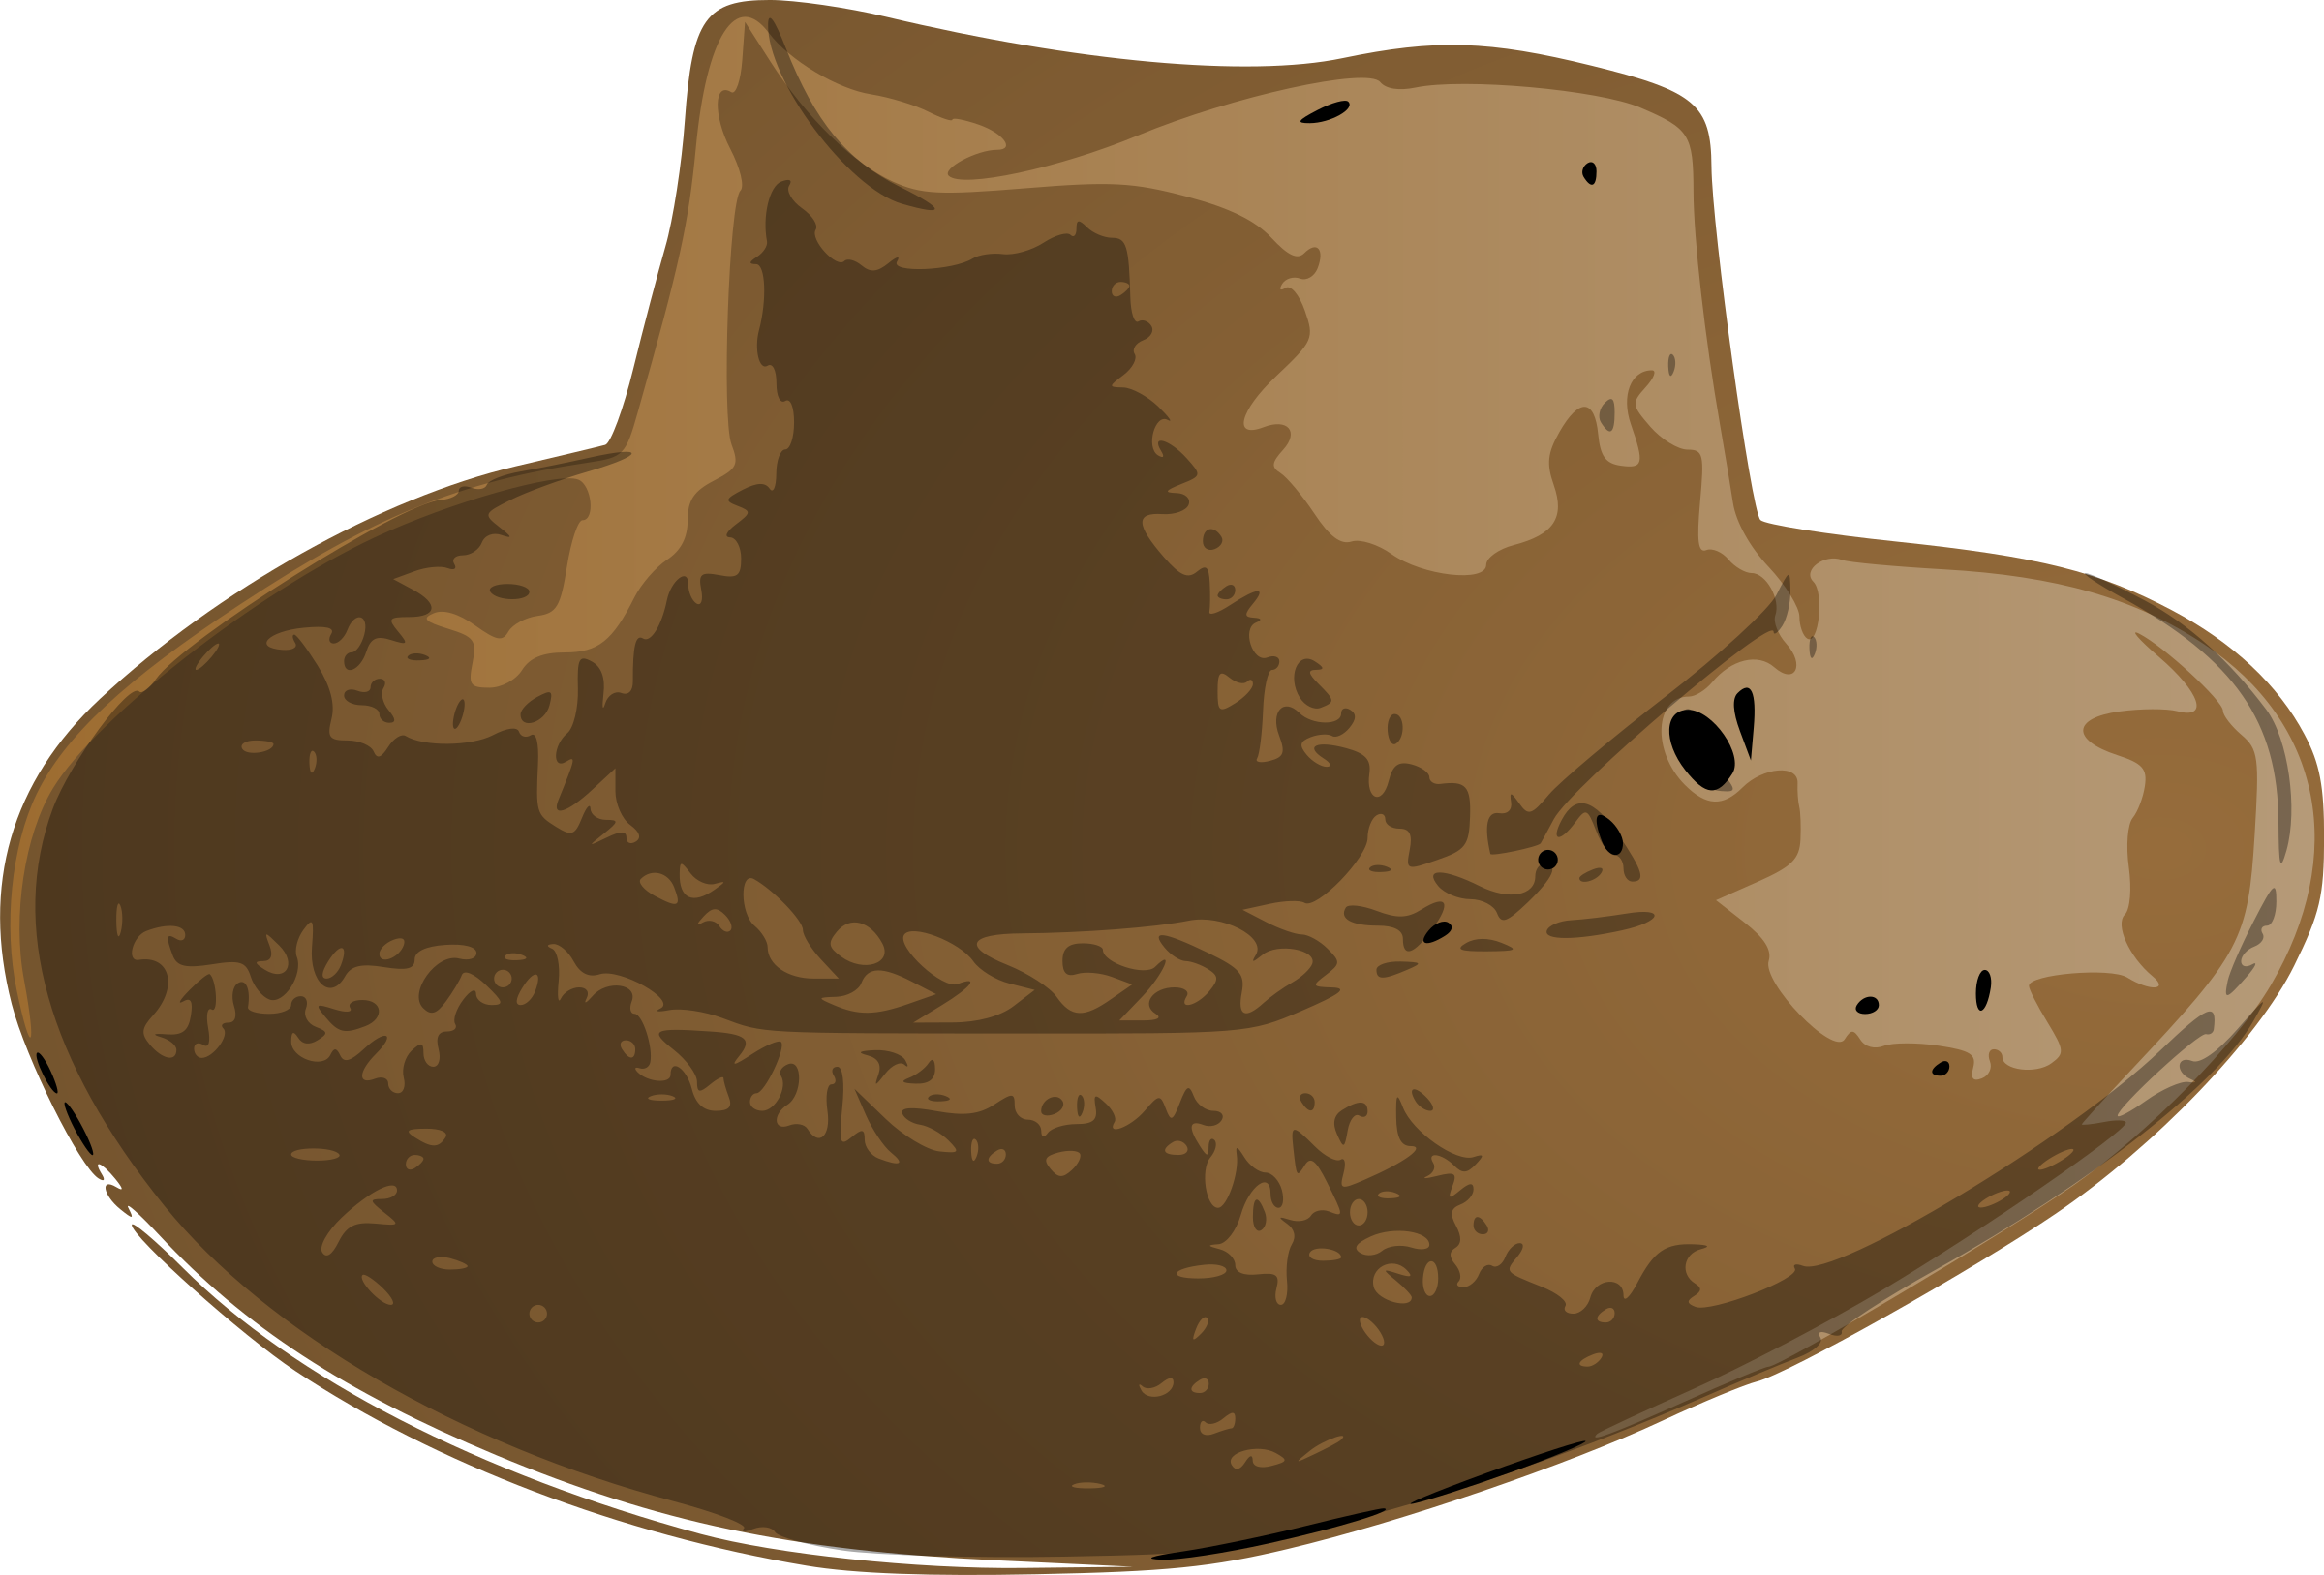 Western clipart indiana jones hat Image Free 92 Jones Clip